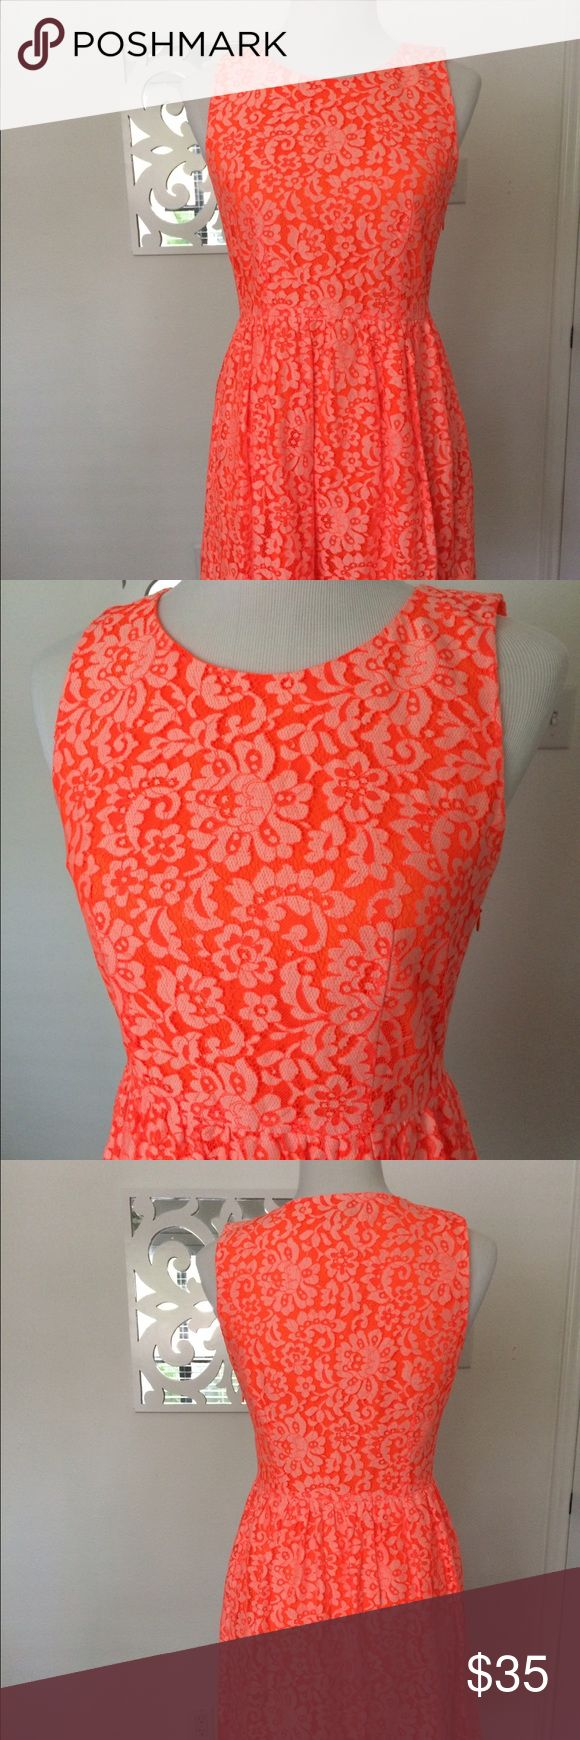 "Madewell Neon Orange Lace Dress Madewell knee-length sleeveless lace dress in neon orange. Size 4. Pre-owned but in excellent shape, no visible issues. Side zipper. Waist is slightly high but not empire. Shoulder to waist- 15"". Waist to hem- 19"". Waist (measured straight across)- 14"". Madewell Dresses Midi"